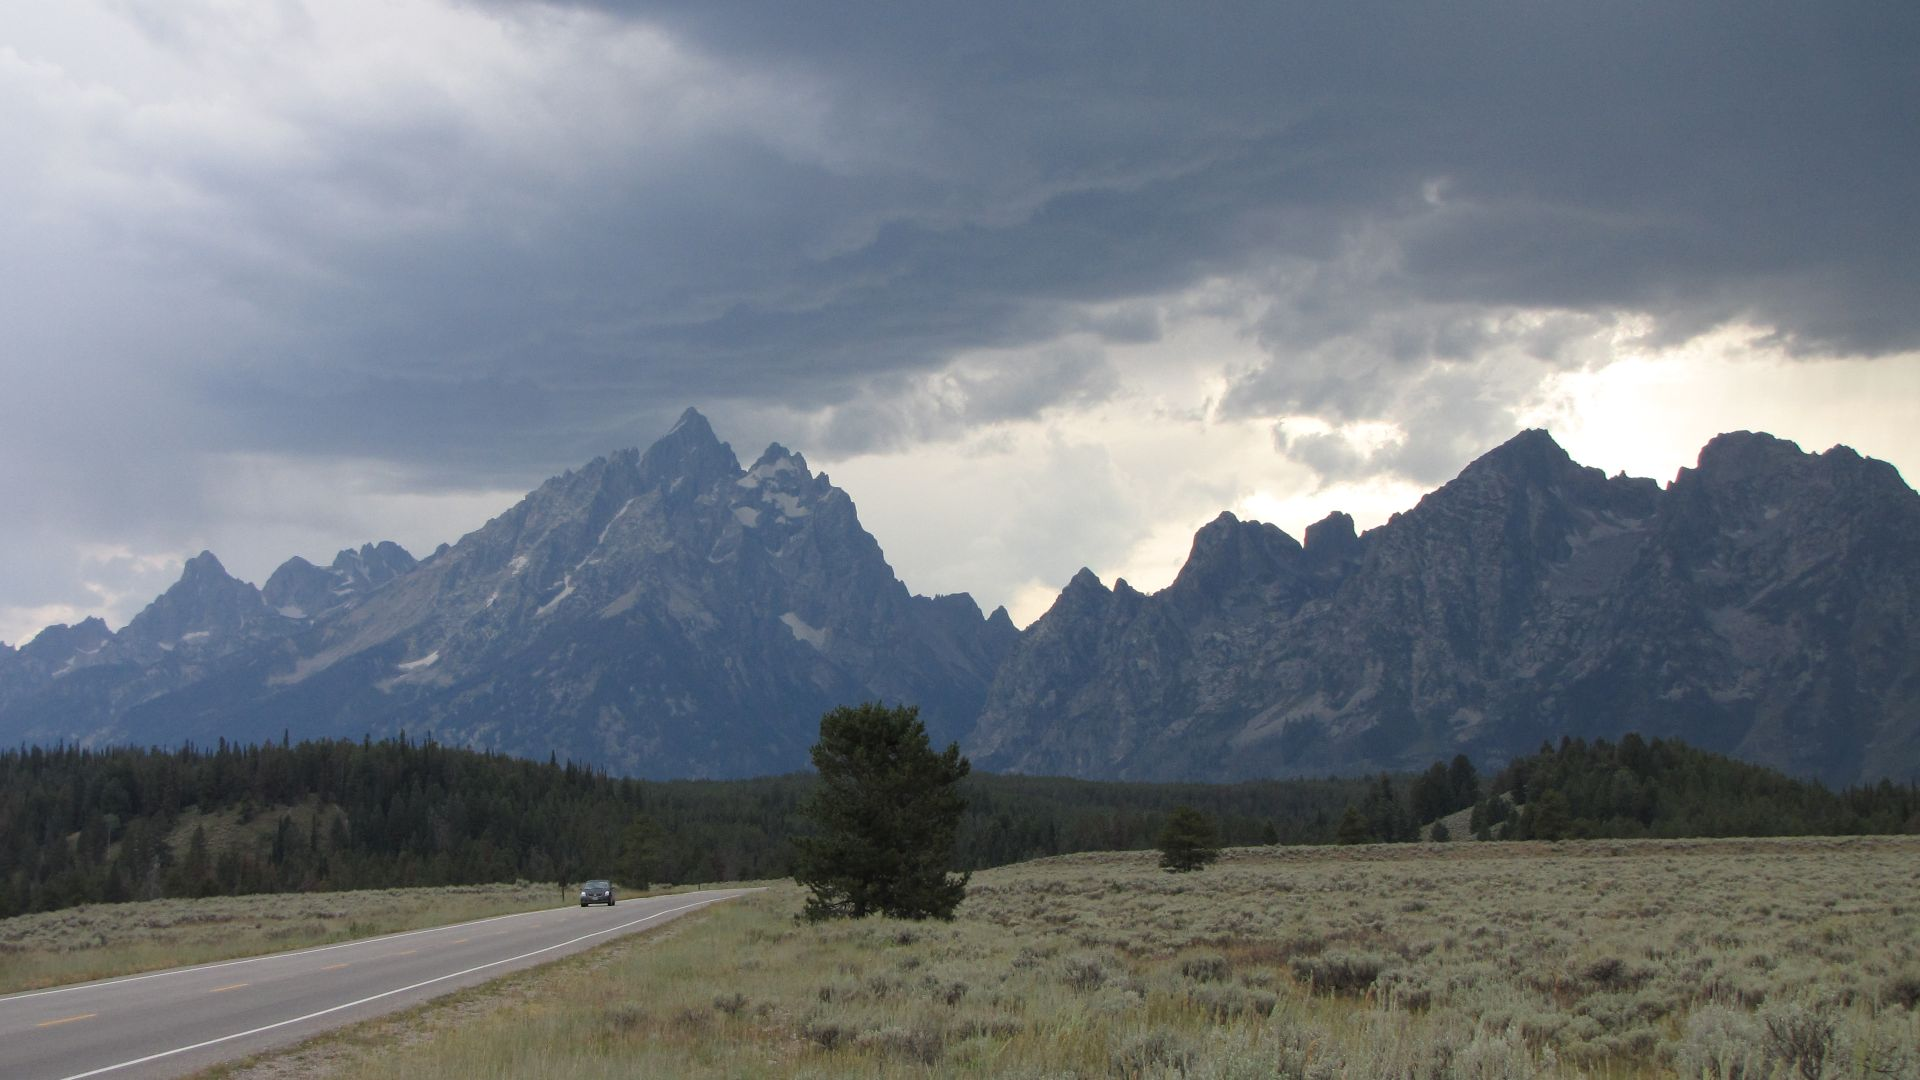 """The Teton mountains, Wyoming, USA during the rapid build-up to the mother of all thunderstorms & an urgent chase to get to camp. Taken during """"Part 1"""" of my 7-month solo  ride in 2009 from the Arctic Ocean coast to Mexico, later following the length of the Rocky Mountains"""